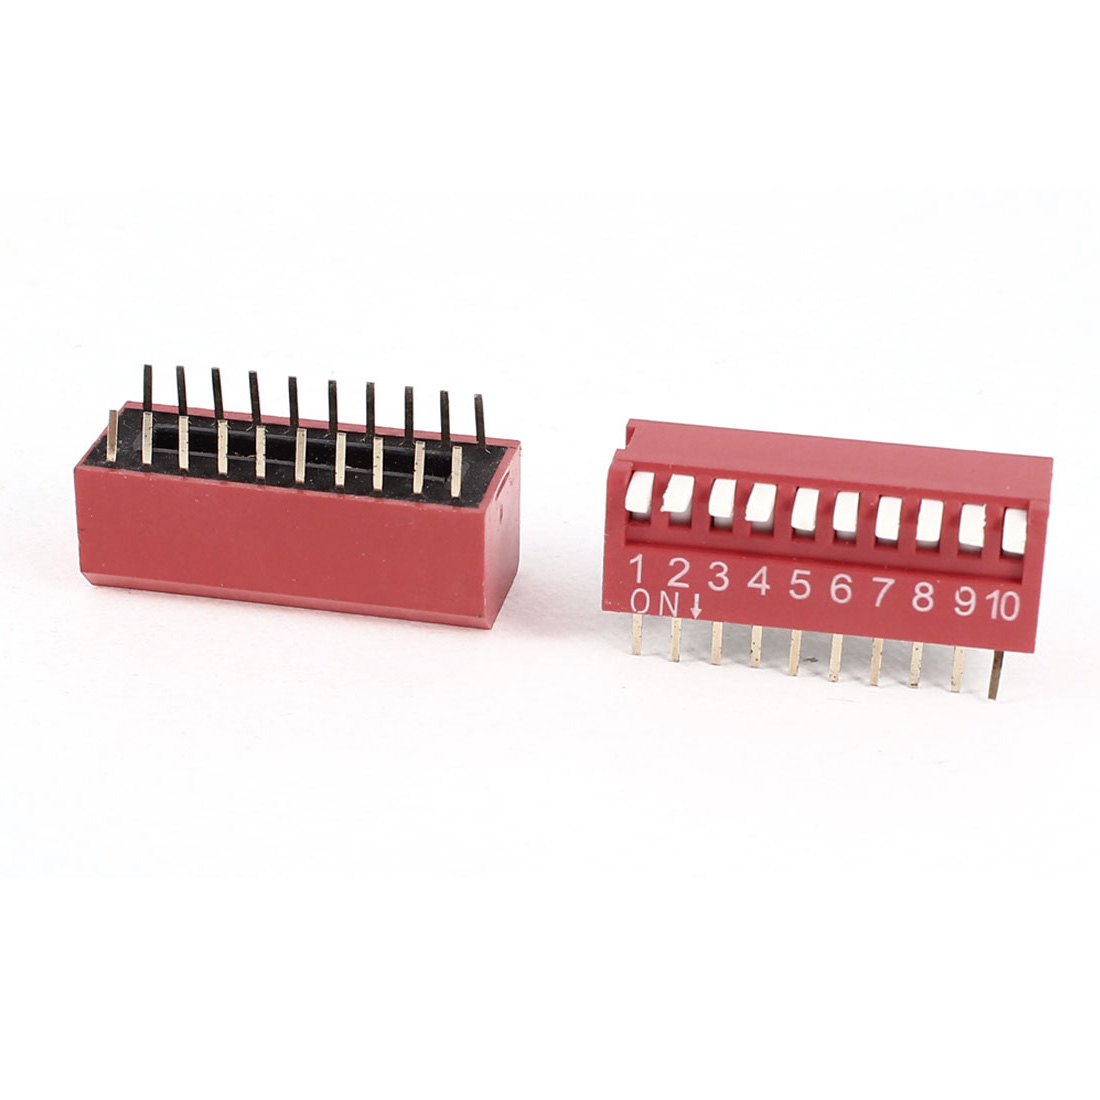 2Pcs 2.54mm Pitch 2-Row 10-Bit 20 Pin STSP PCB Through Hole Mounting Piano Key DIP Switches Red